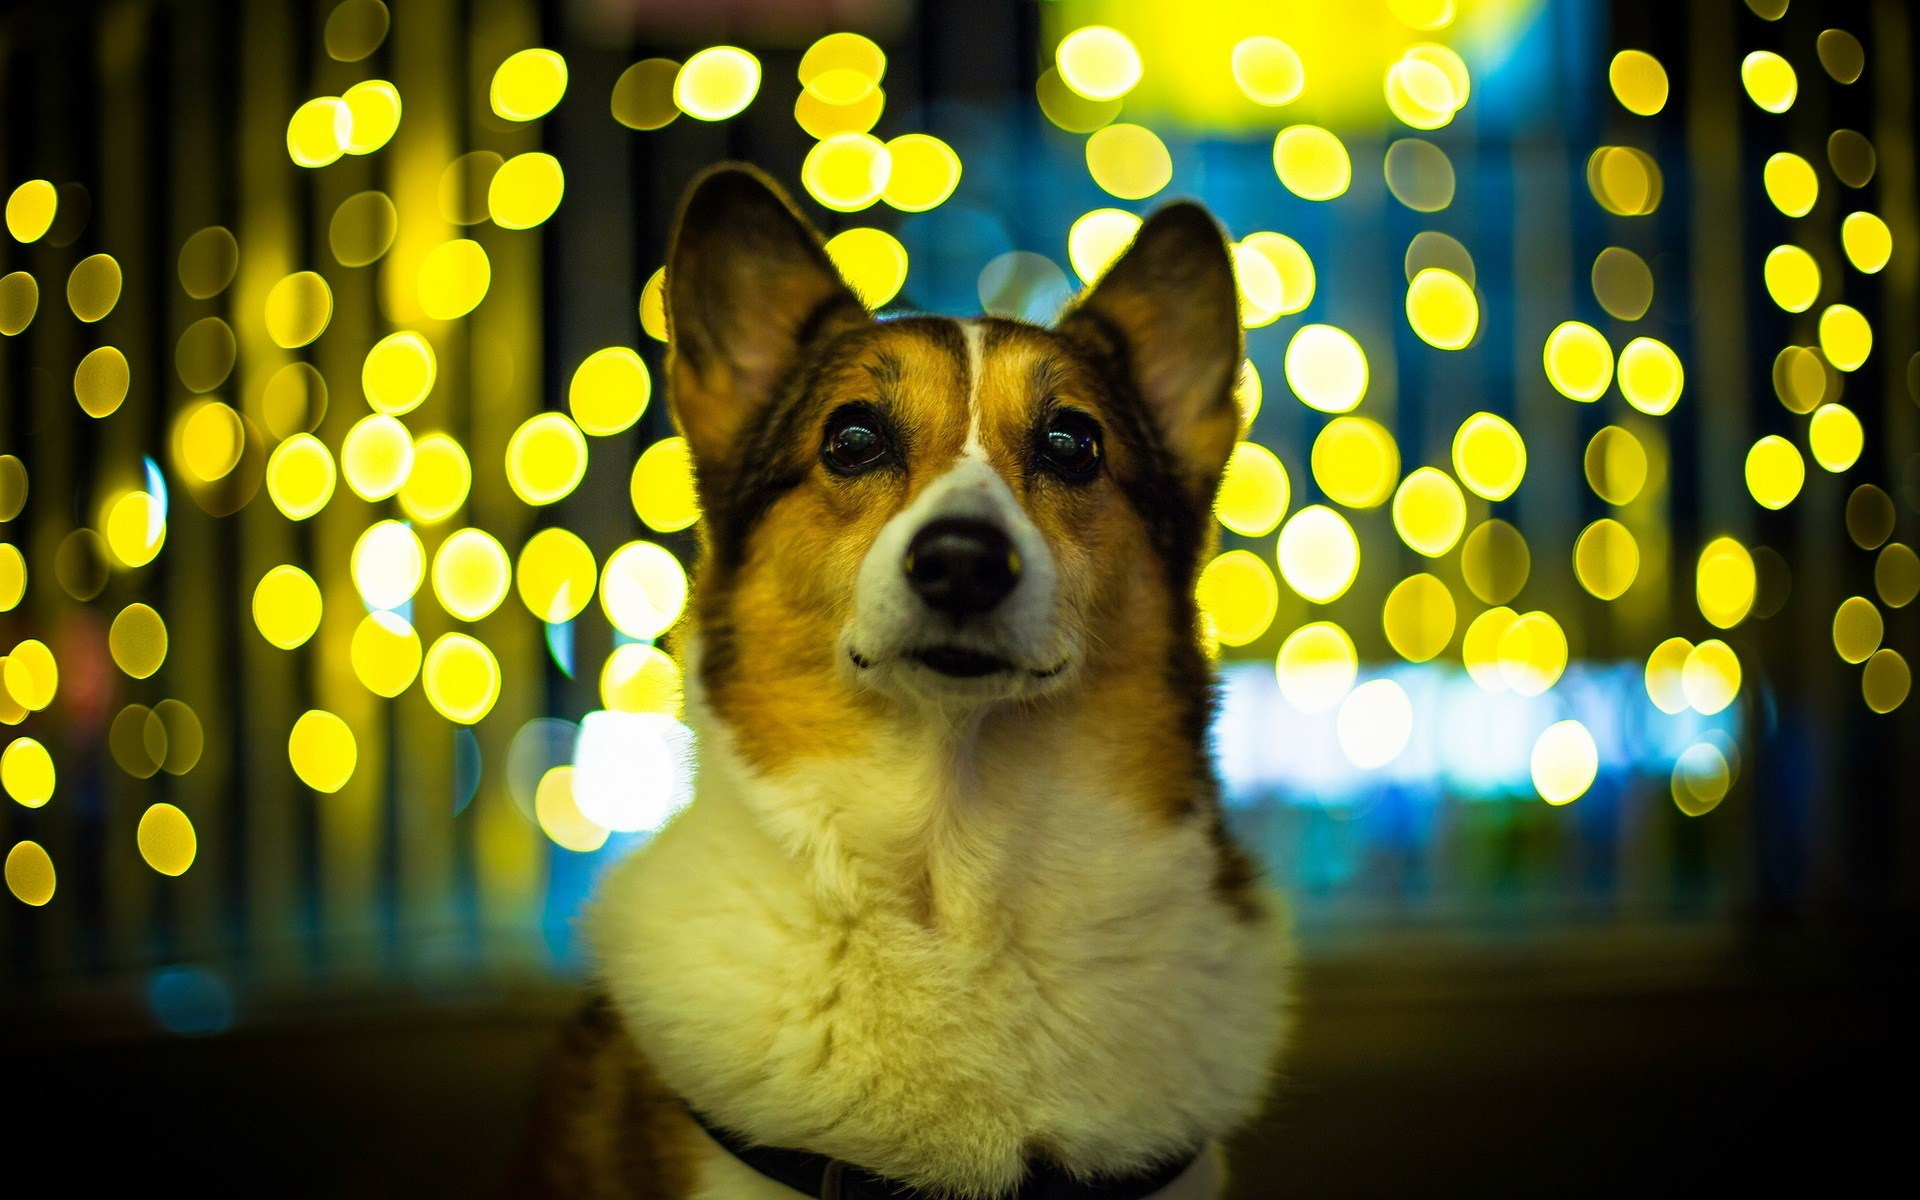 Dog Look Lights Amazing Photo